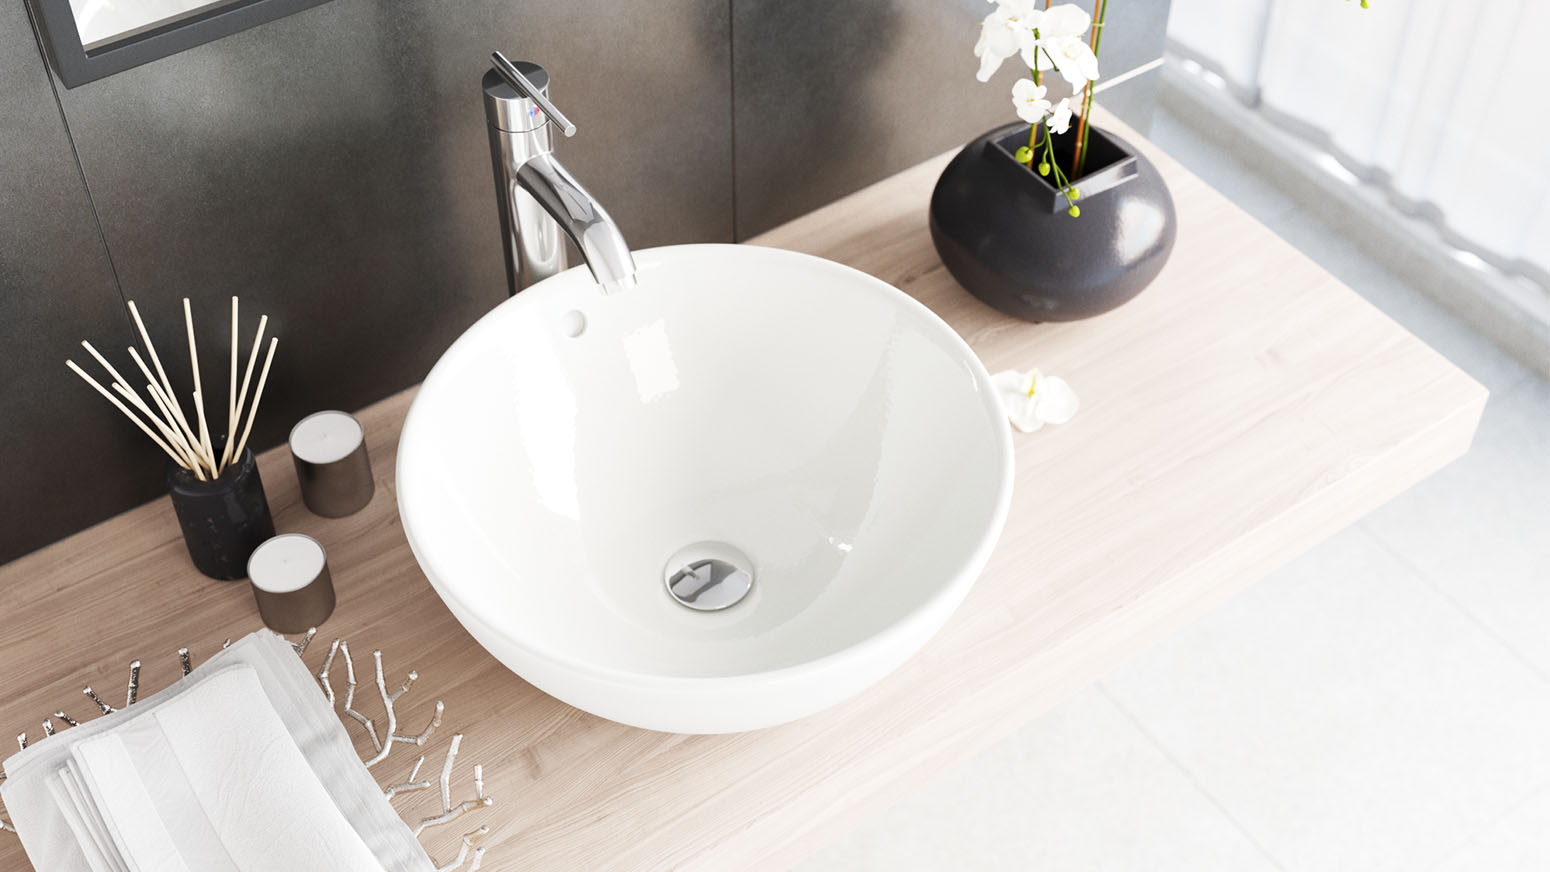 Water Sink Market by Manufacturers, Countries, Type and Application, Forecast to 2024